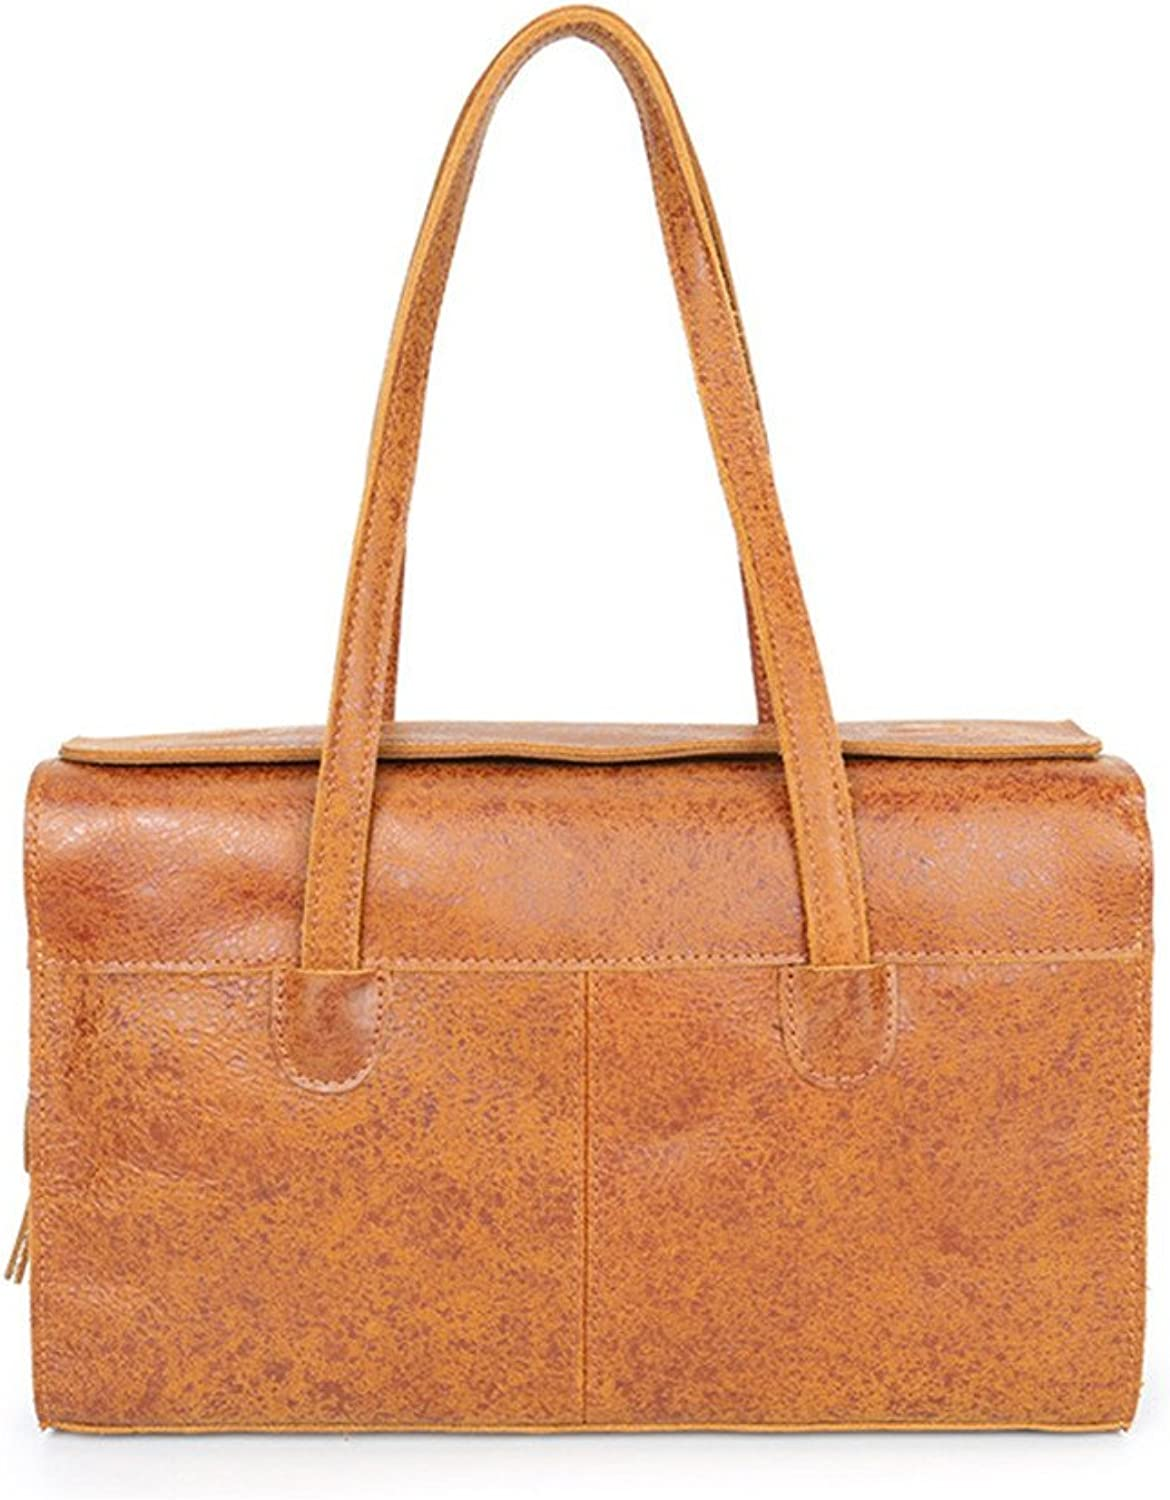 Sturdy New Retro Rectangle Handbag Leather First Layer Leather Ladies Shoulder Handbag Personality Flash Men and Women Leather Handbag Simple Wild Wind Large Capacity (color   Brown)